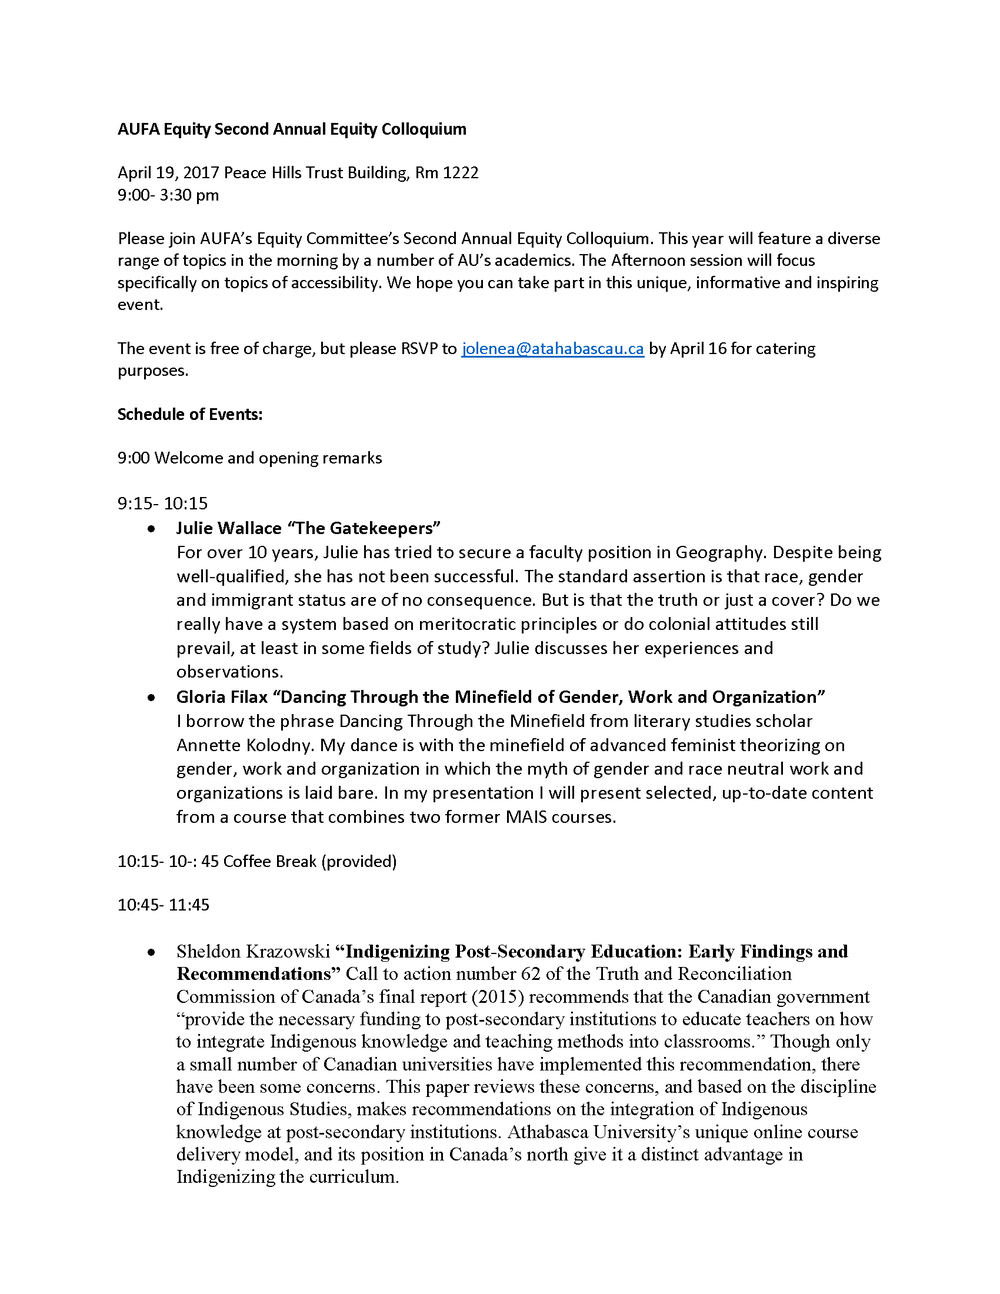 AUFA Equity Second Annual Equity Colloquium_Page_1.png